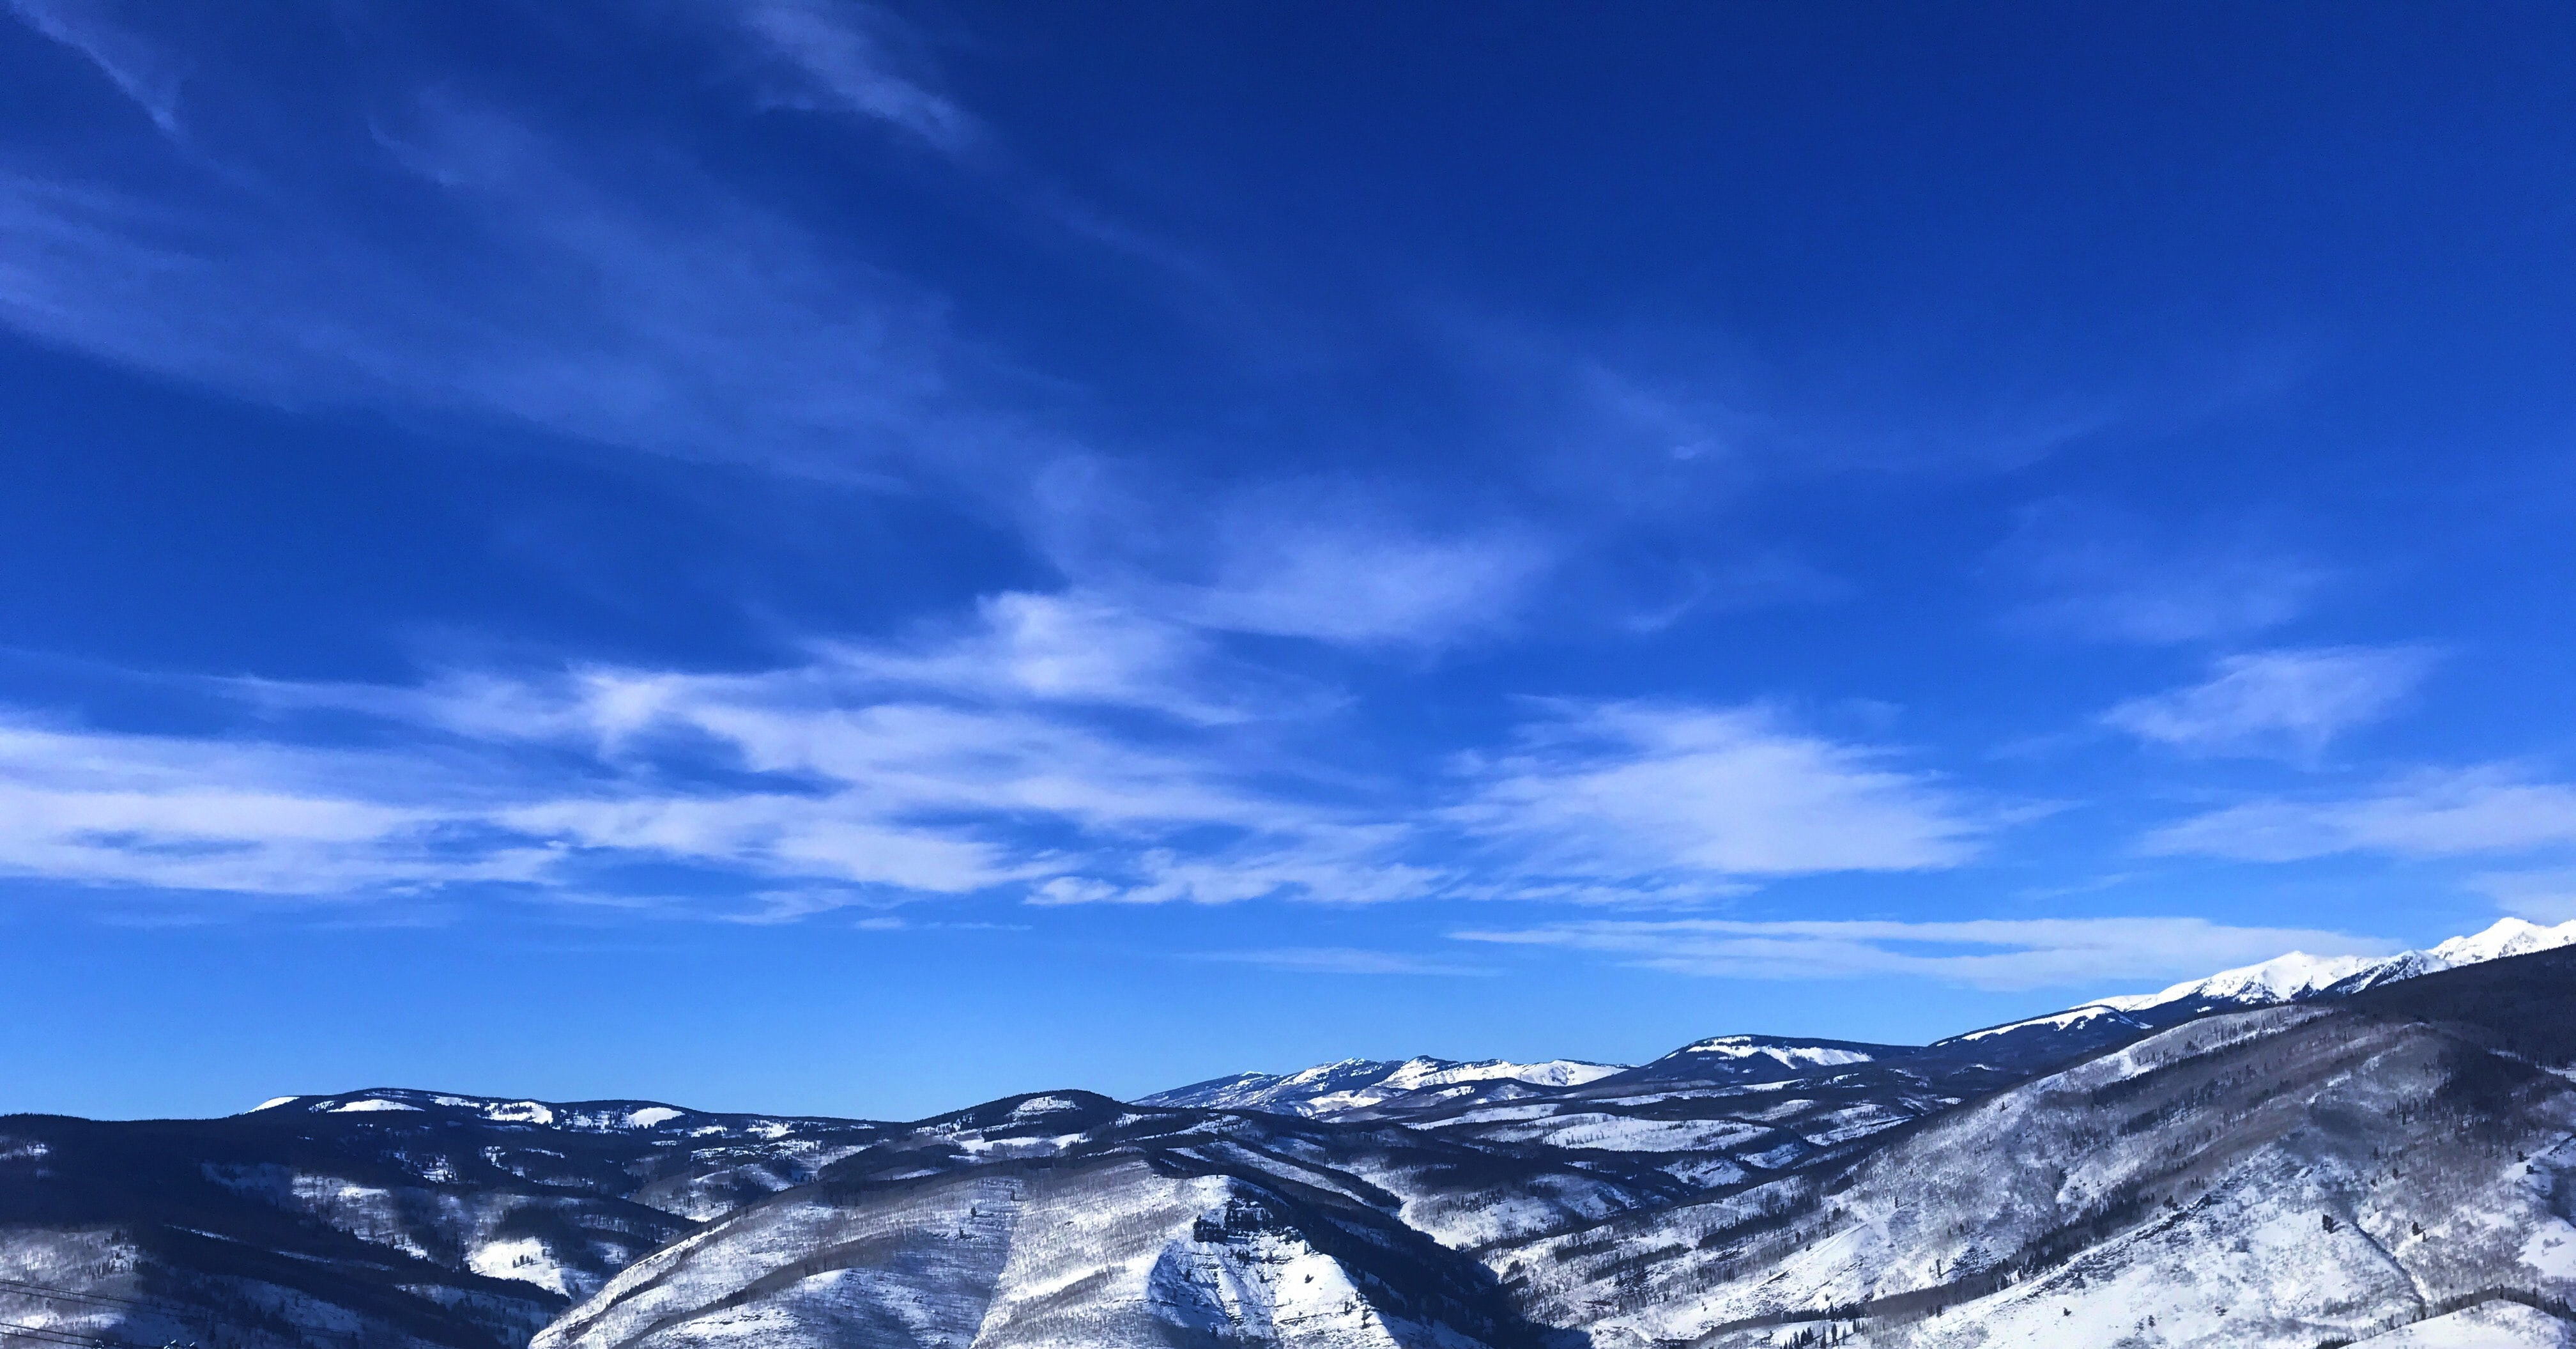 A low snow-capped mountain range under a blue sky